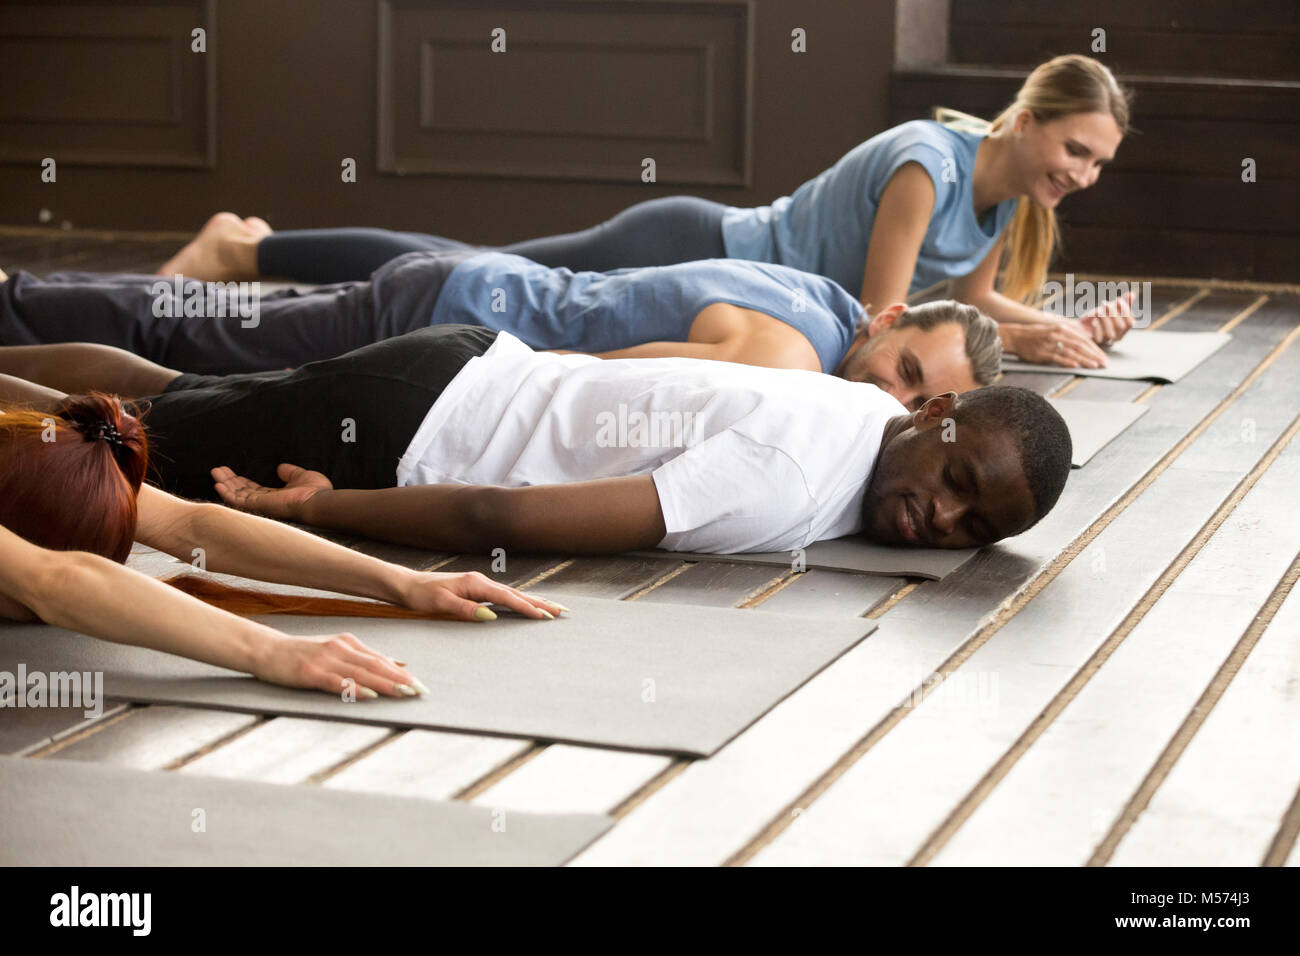 Tired diverse people relaxing on mats after yoga stretching trai - Stock Image